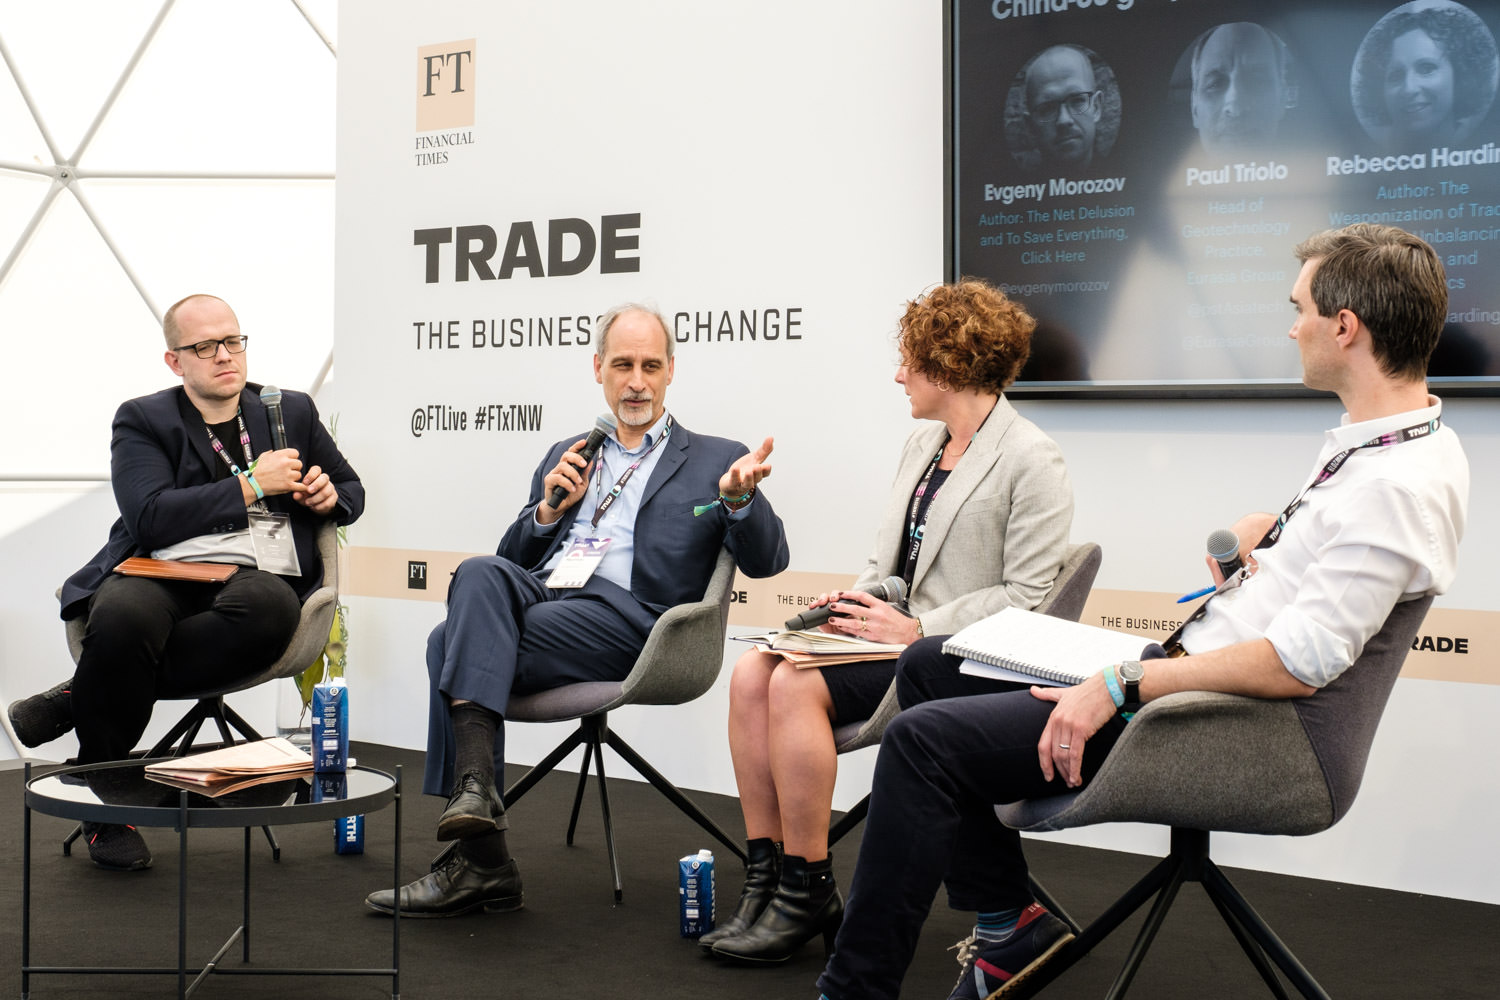 A photograph of a panel discussion at the Financial Times stage at the TNW event in Amsterdam. The photo shows Paul Triolo talking to Evgeny Morozov and Rebecca Harding.